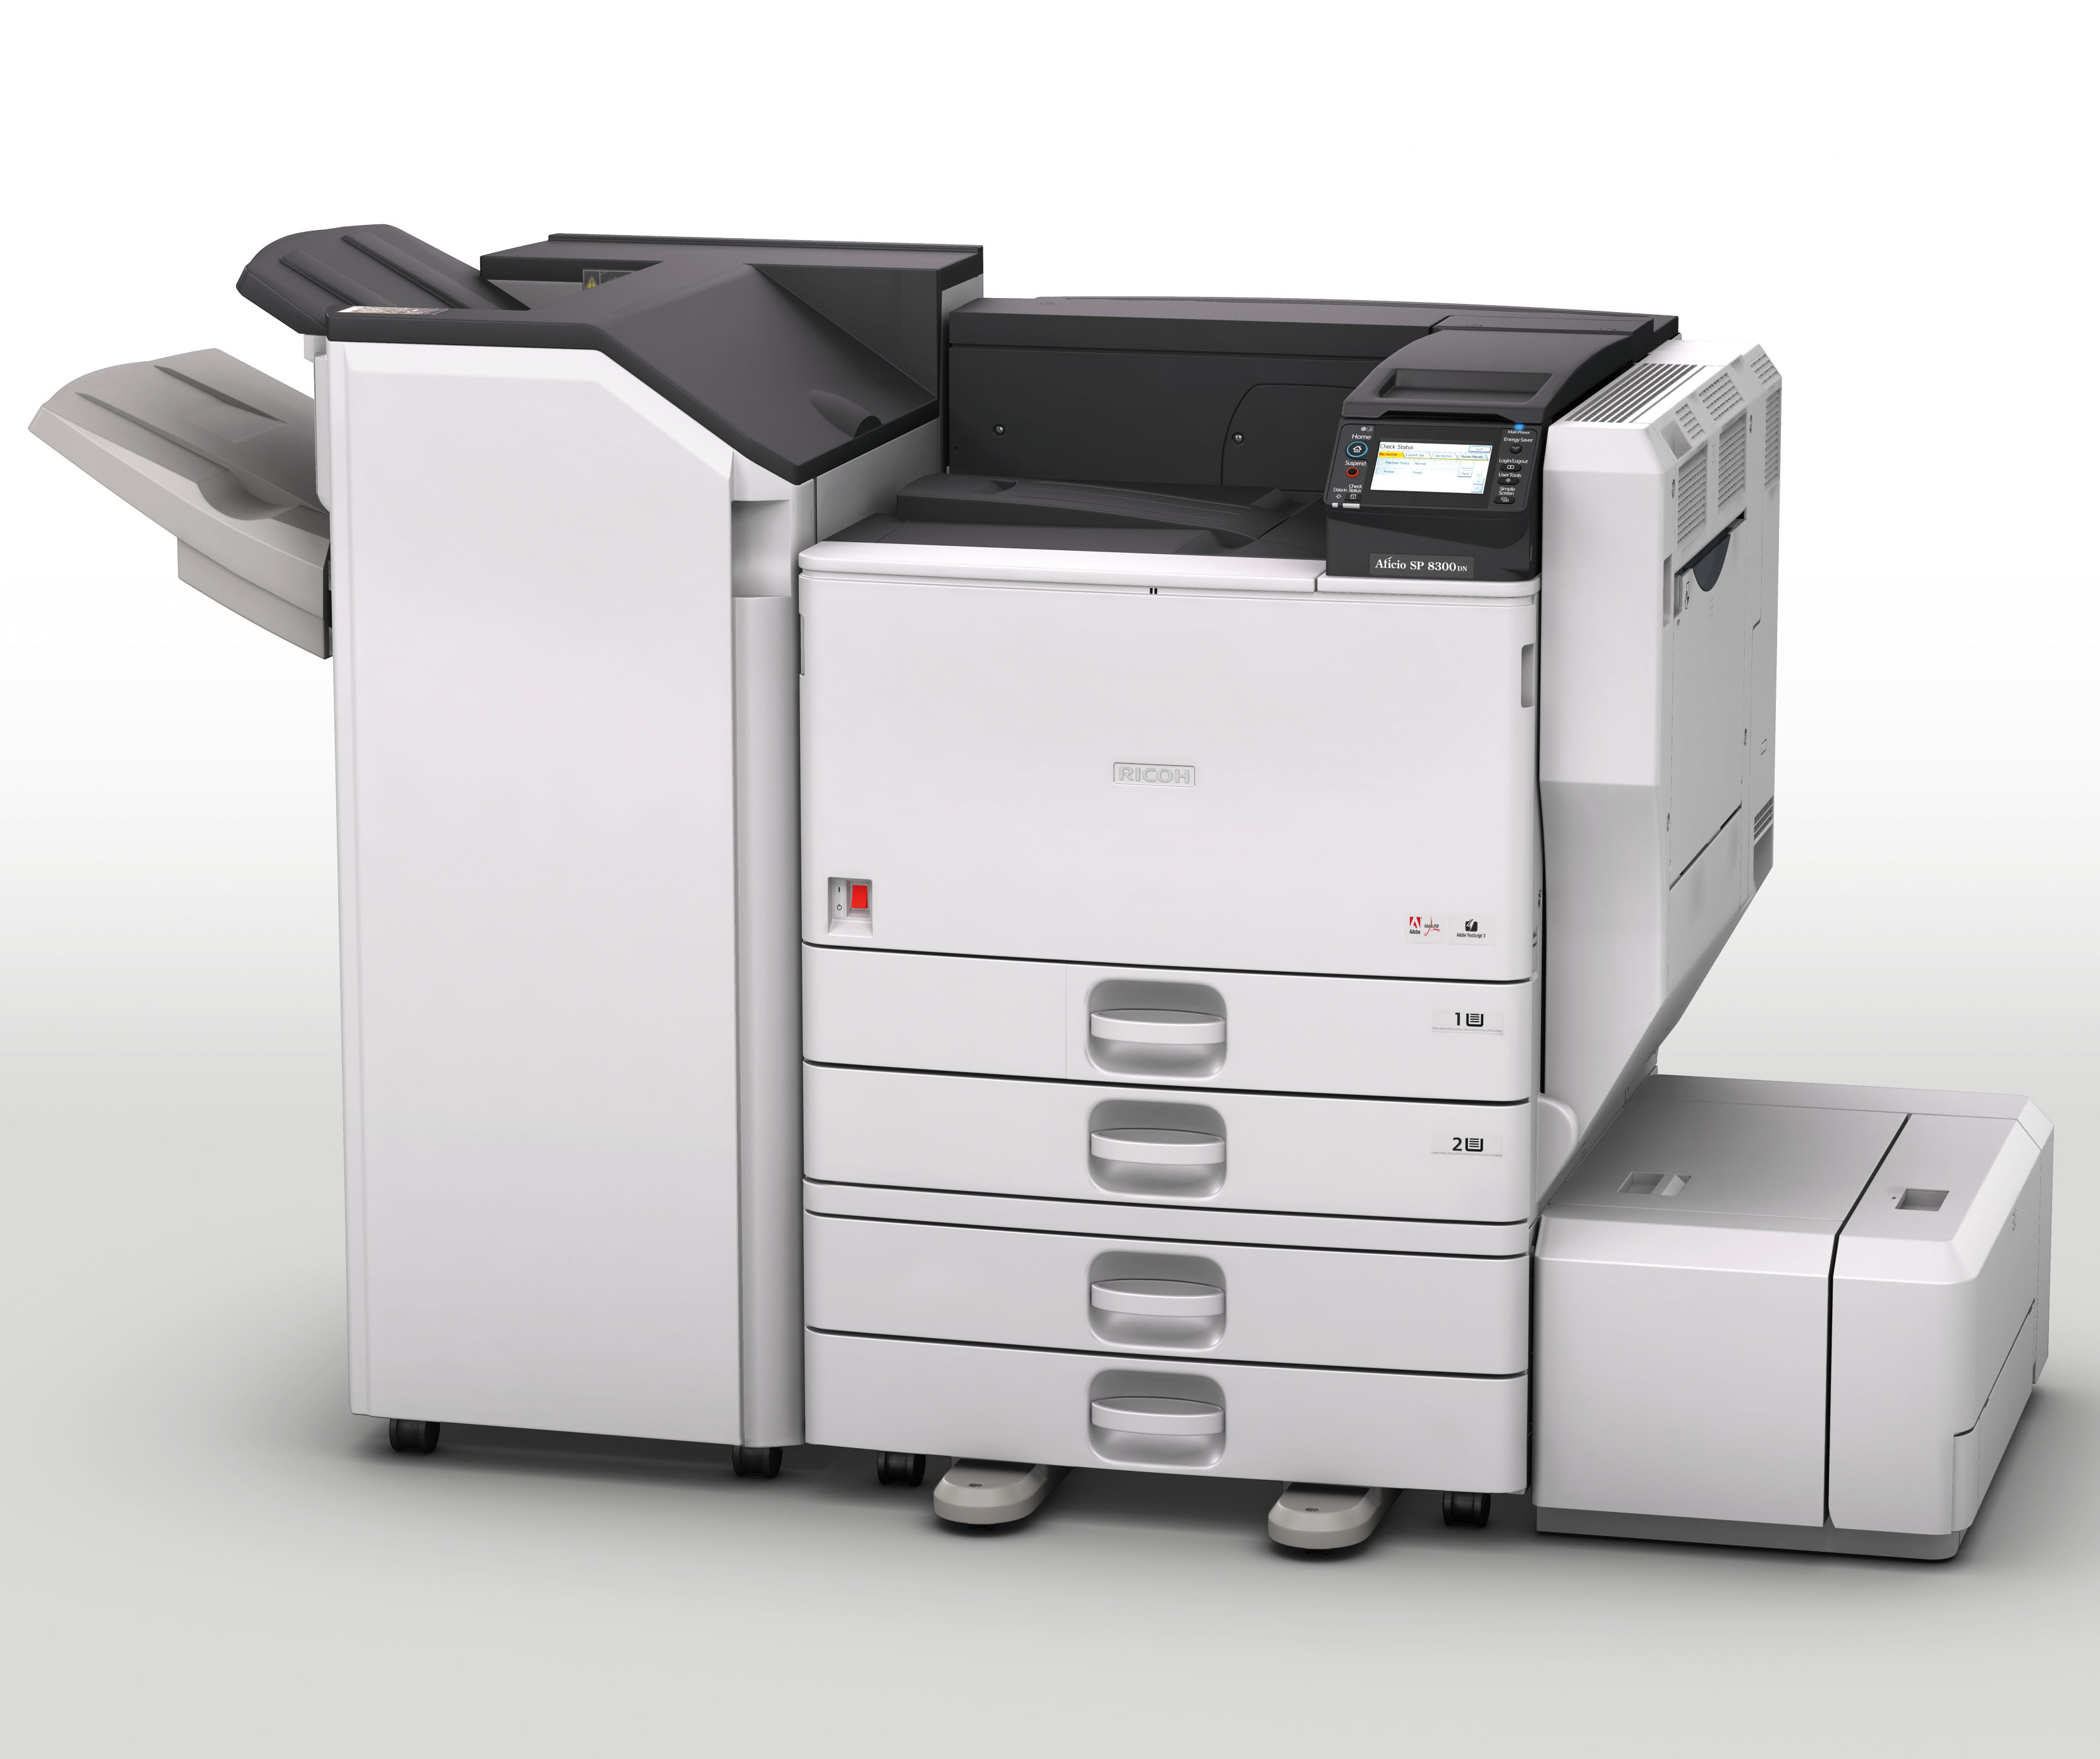 Ricoh Aficio SP C830DN Printer PostScript3 Driver (2019)